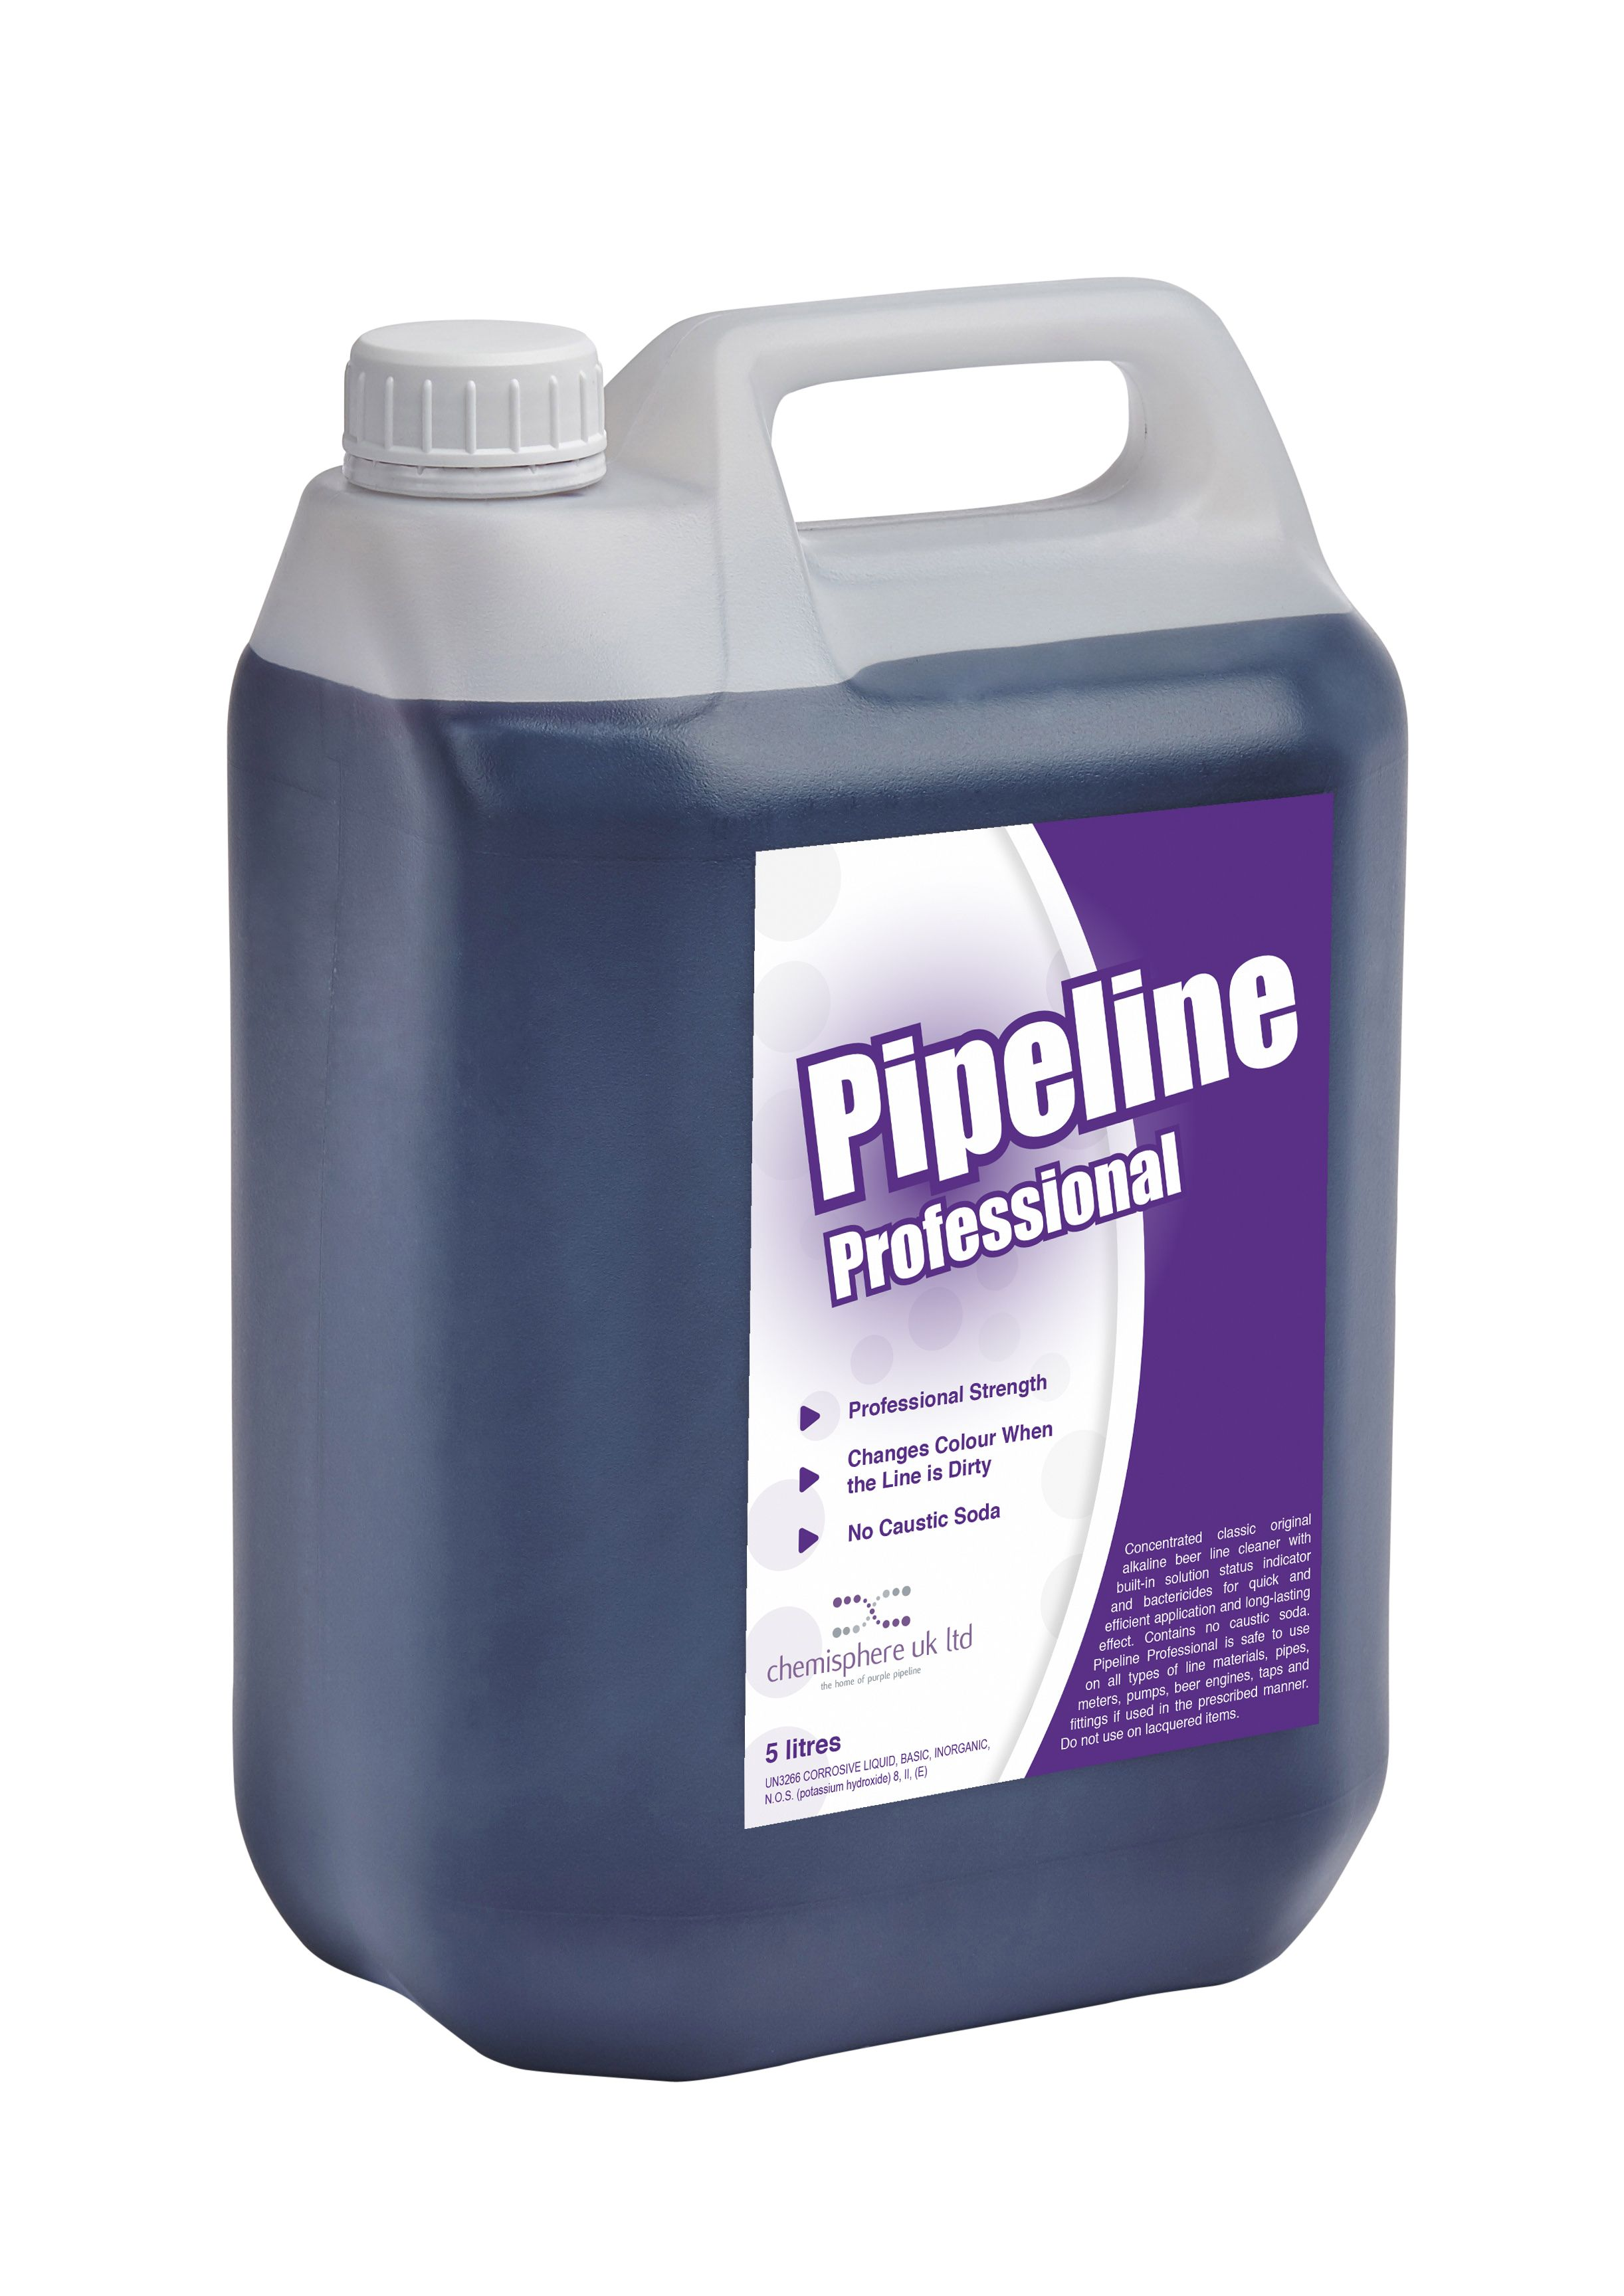 Pipeline Professional is a professional strength purple